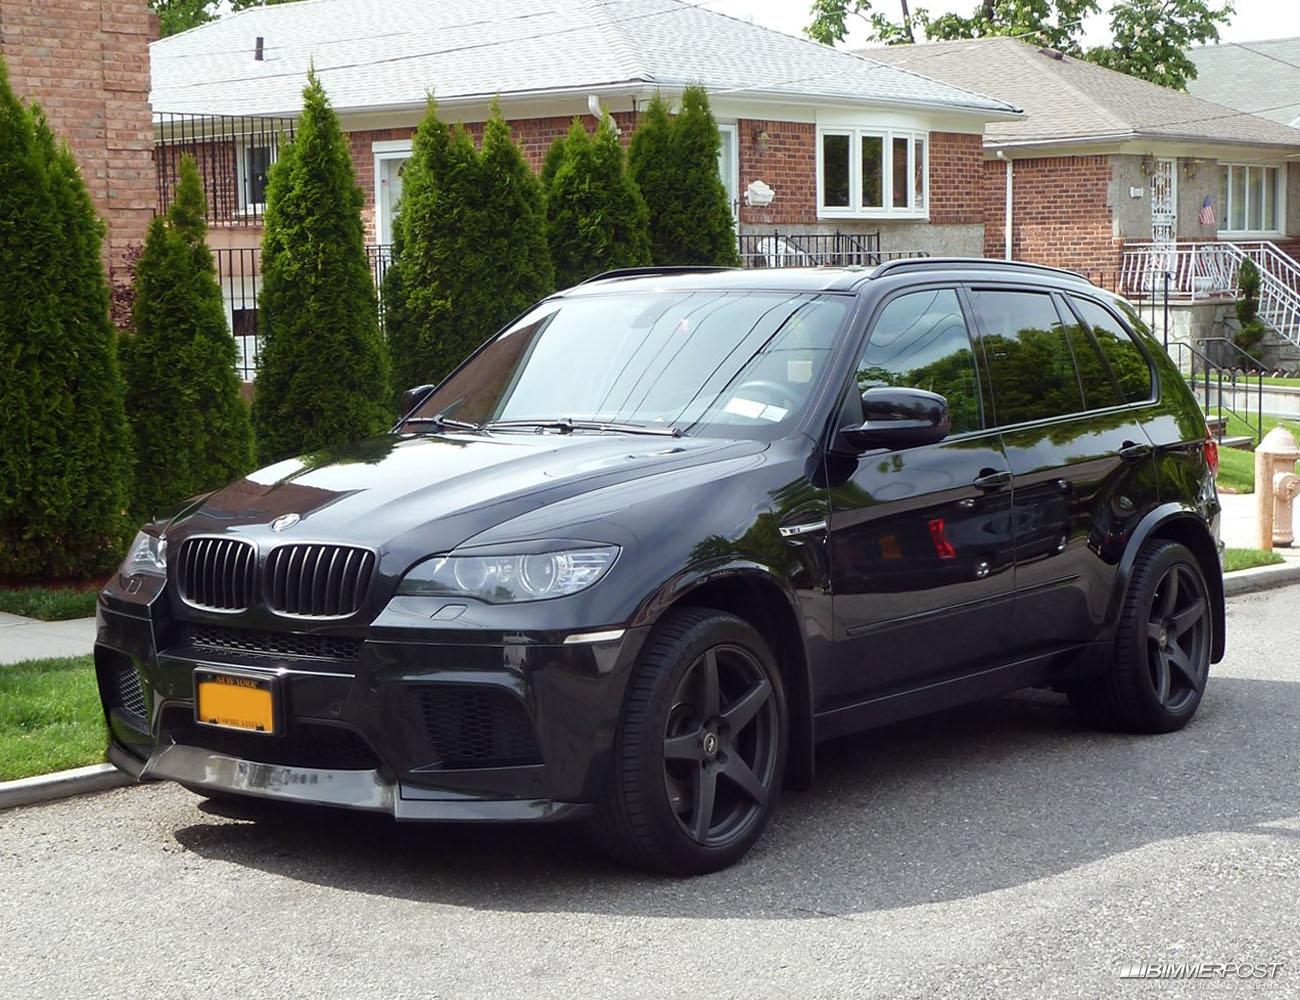 Cybervinn S 2011 Bmw X5 M Bimmerpost Garage